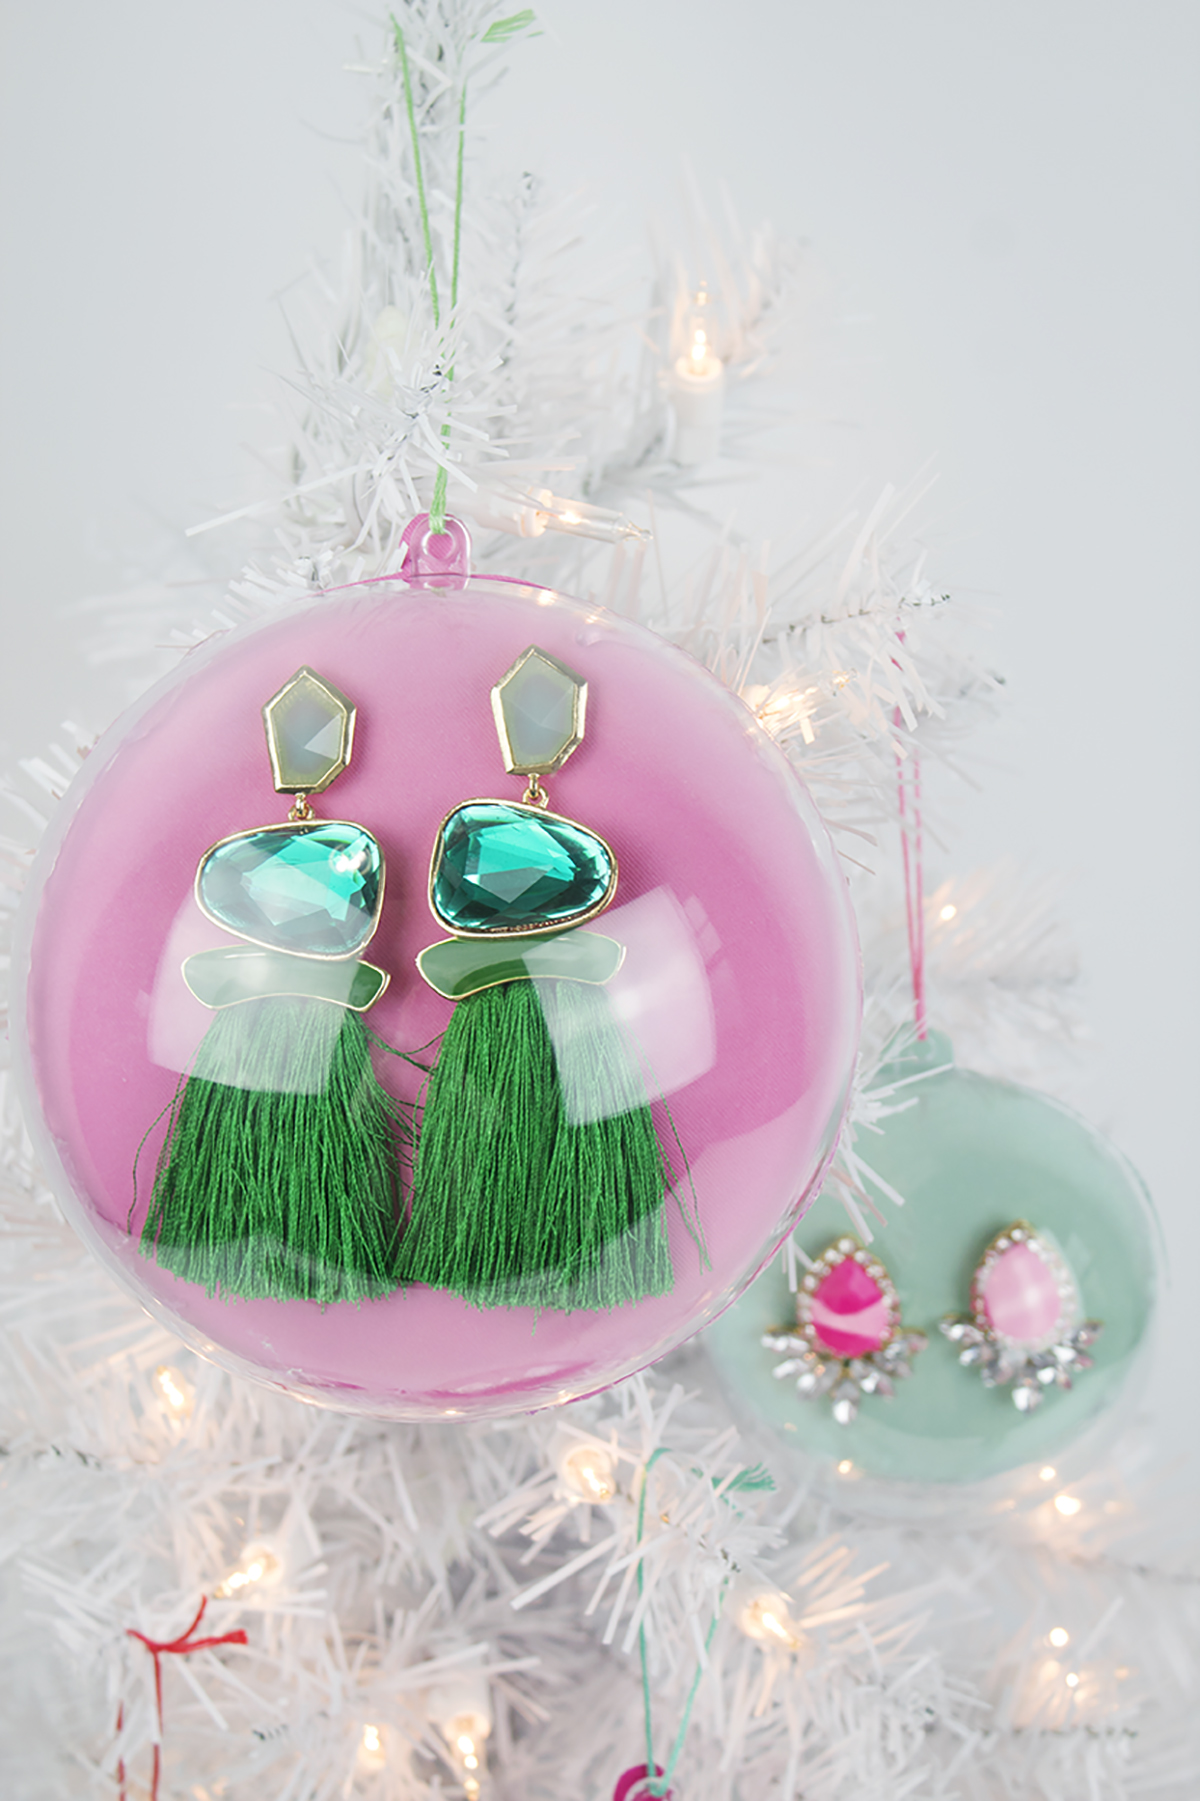 Looking for a great stocking stuffer or Secret Santa gift? These earring ornaments are way more fun than regular ho-hum packaging, and they're super easy and affordable to do! Click to find the full DIY and check one more thing off your to do list. #diyornaments #stockingstuffer #secretsantagift